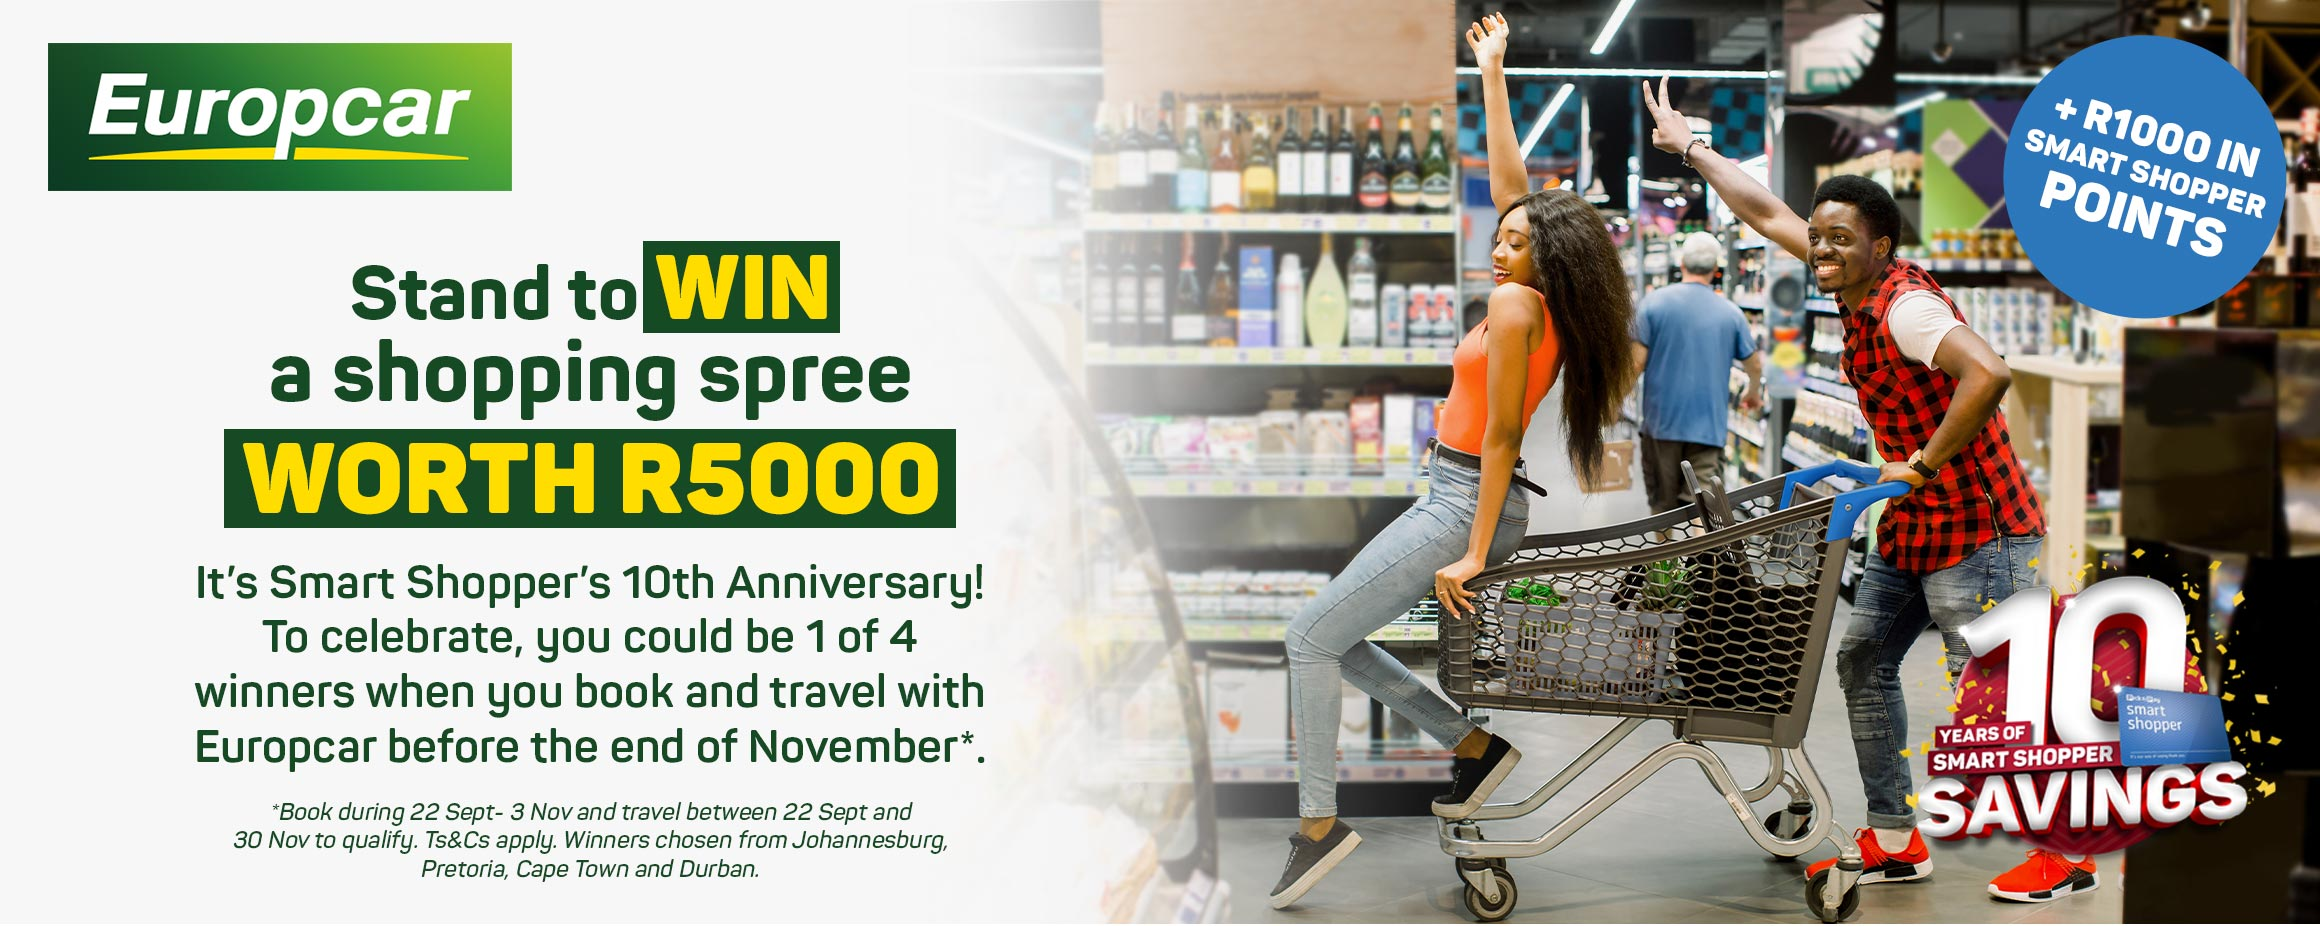 Stand to win a shopping spree worth R50000